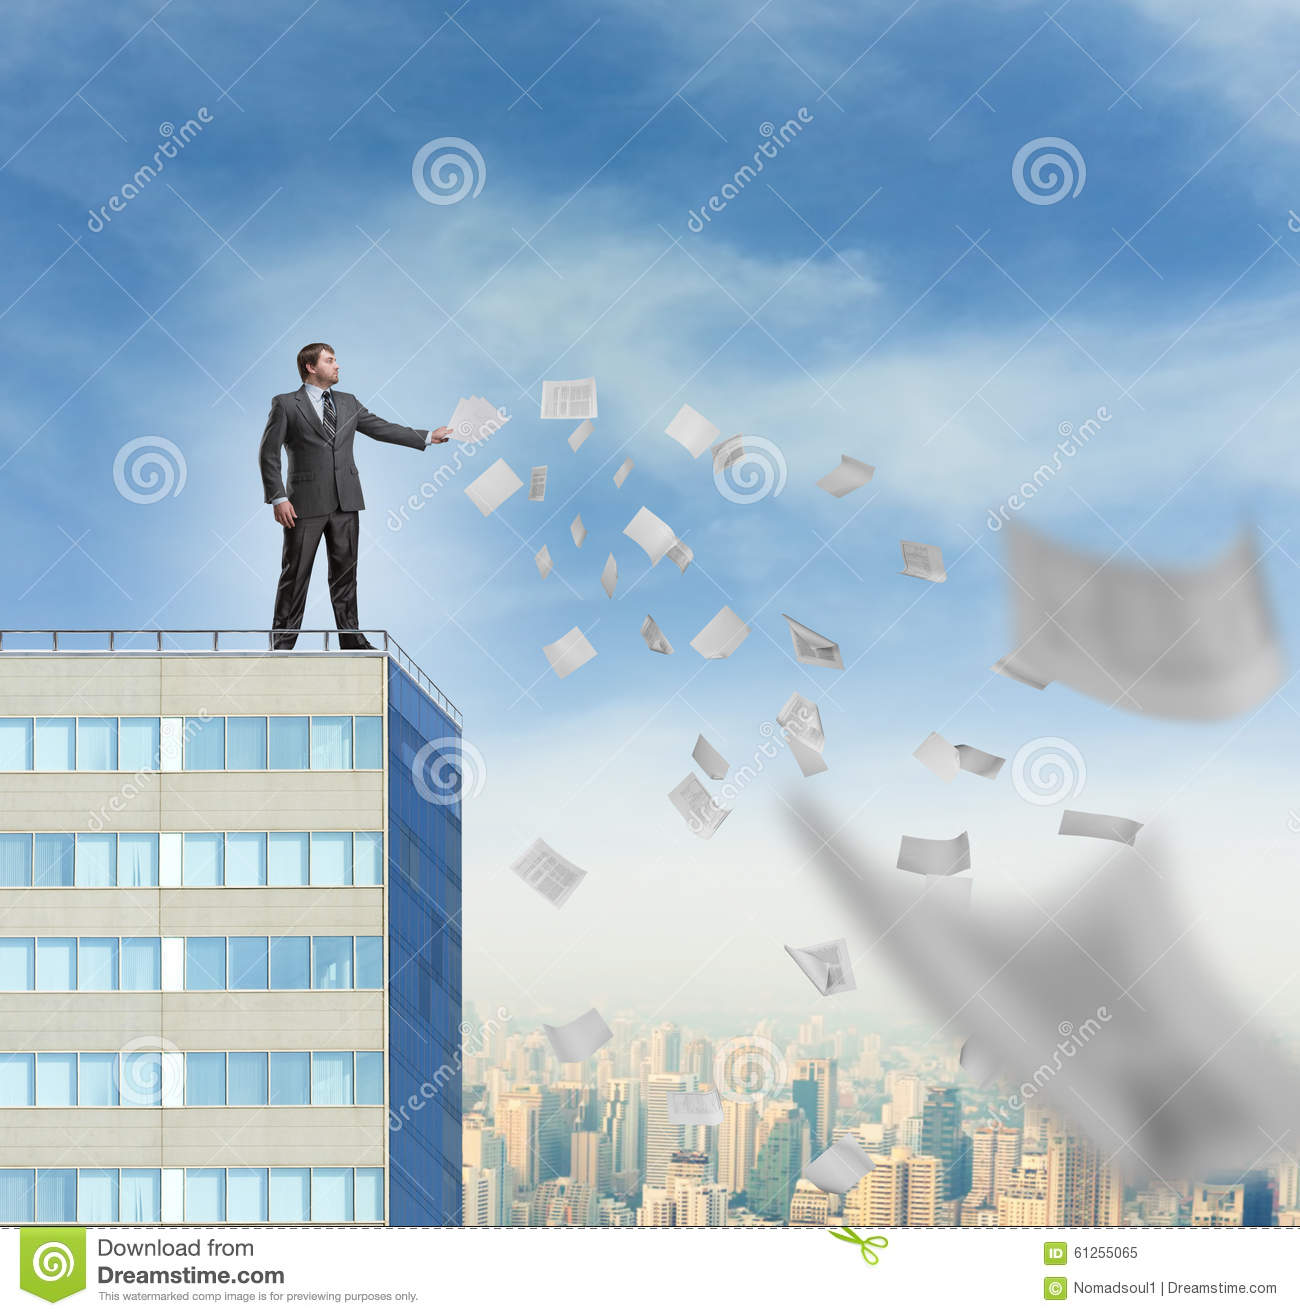 Businessman is throwing away the documents